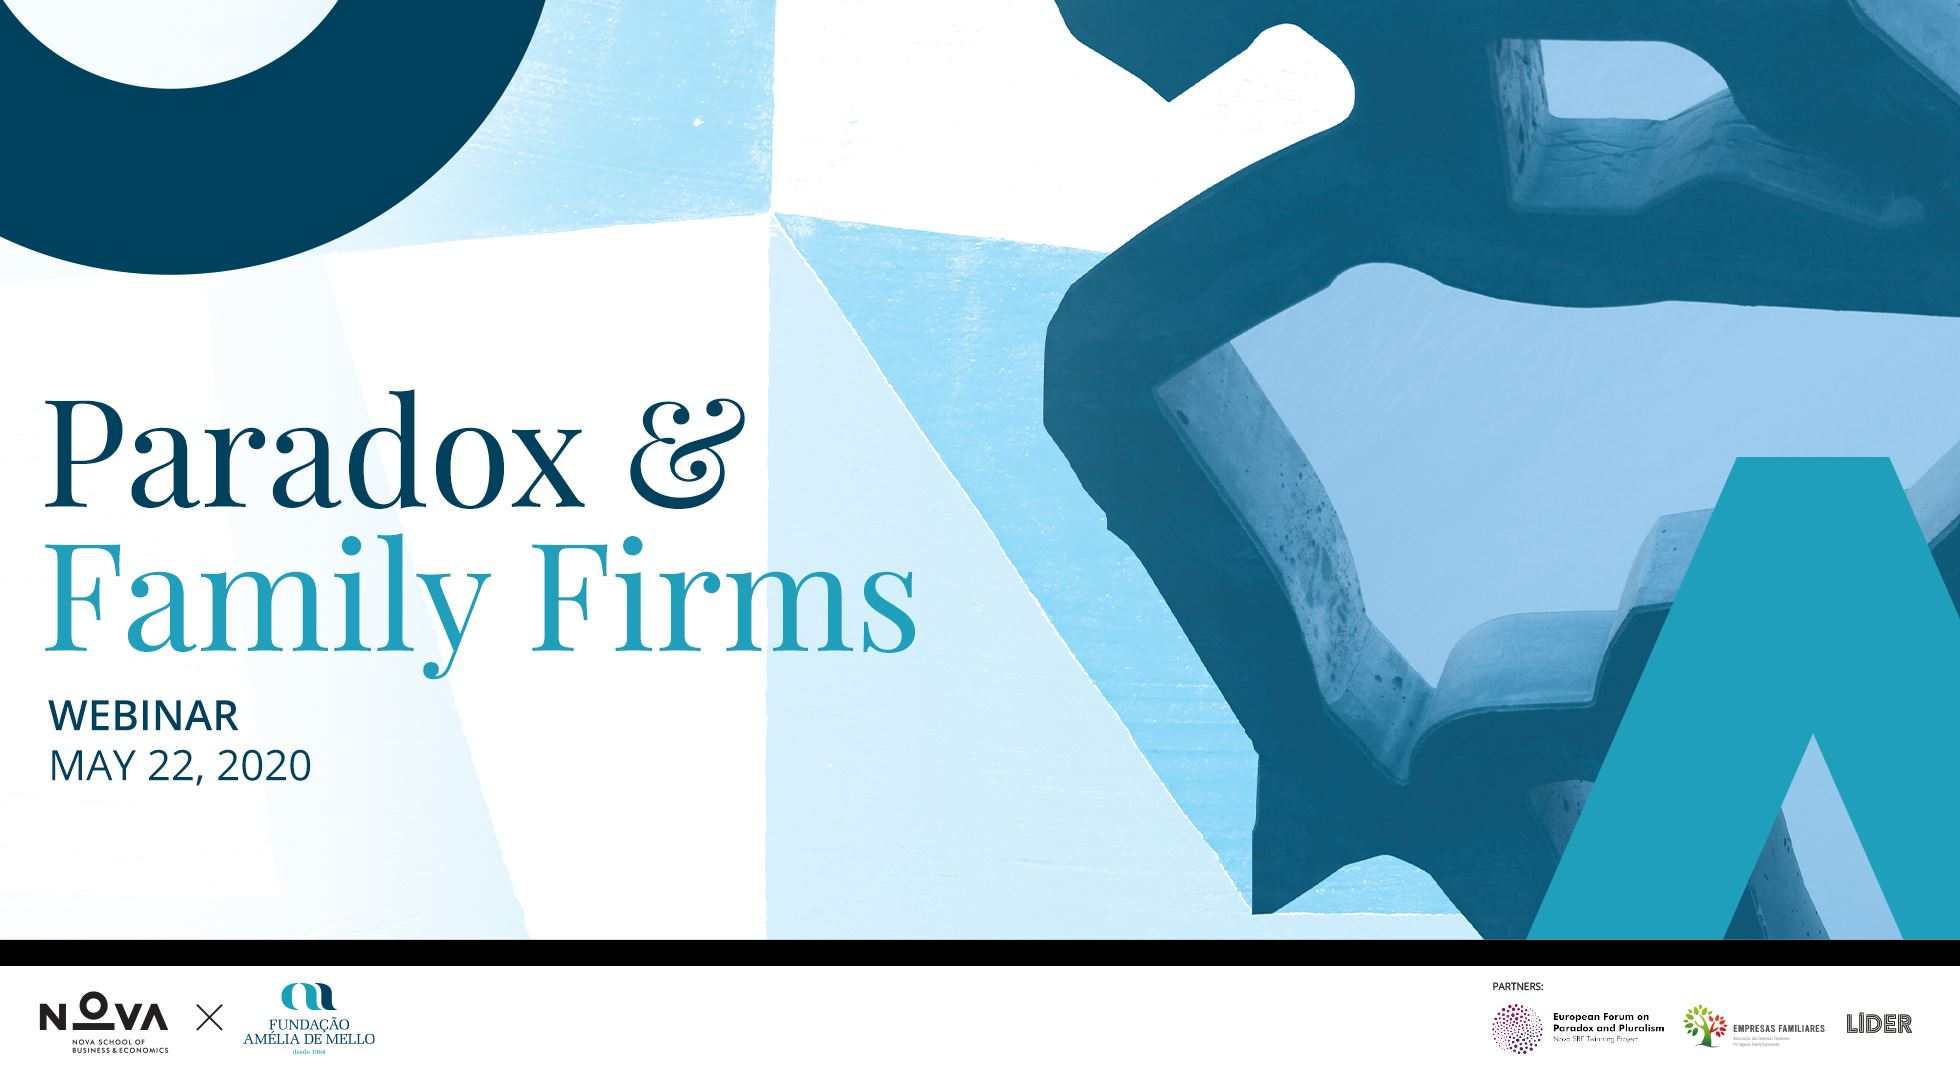 Paradox & Family Firms - Research Webinars